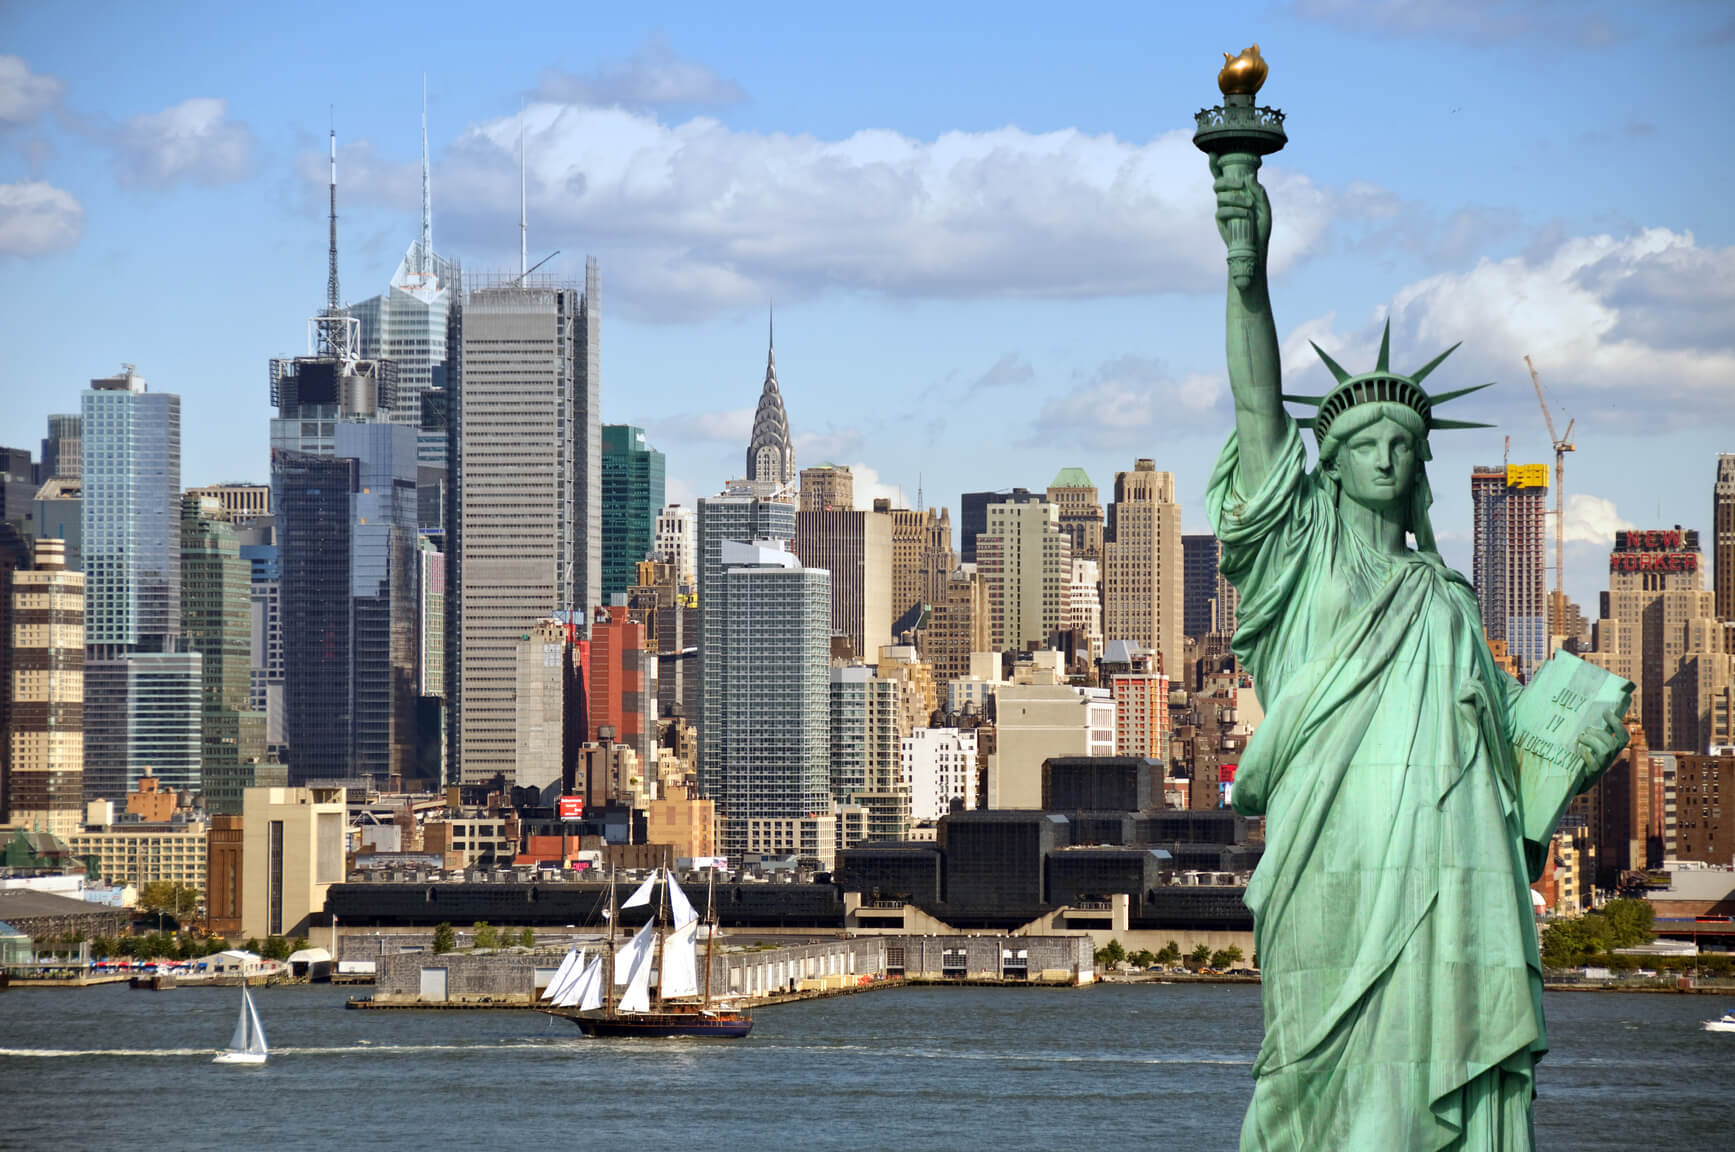 Luxembourg to New York, USA for only €229 roundtrip (Oct-May dates)